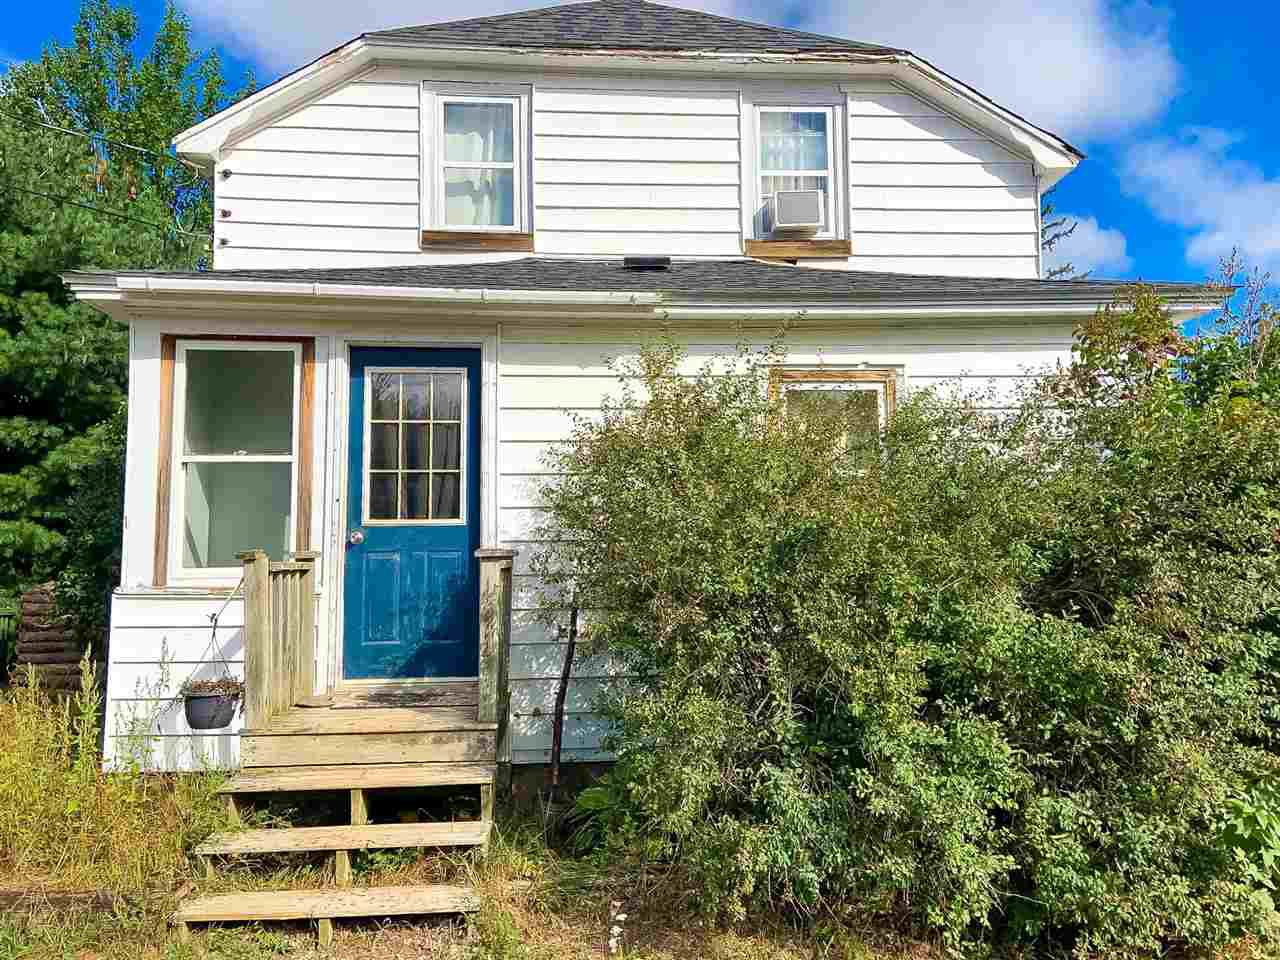 Main Photo: 635 Faculty Drive in Greenwood: 404-Kings County Residential for sale (Annapolis Valley)  : MLS®# 202017653